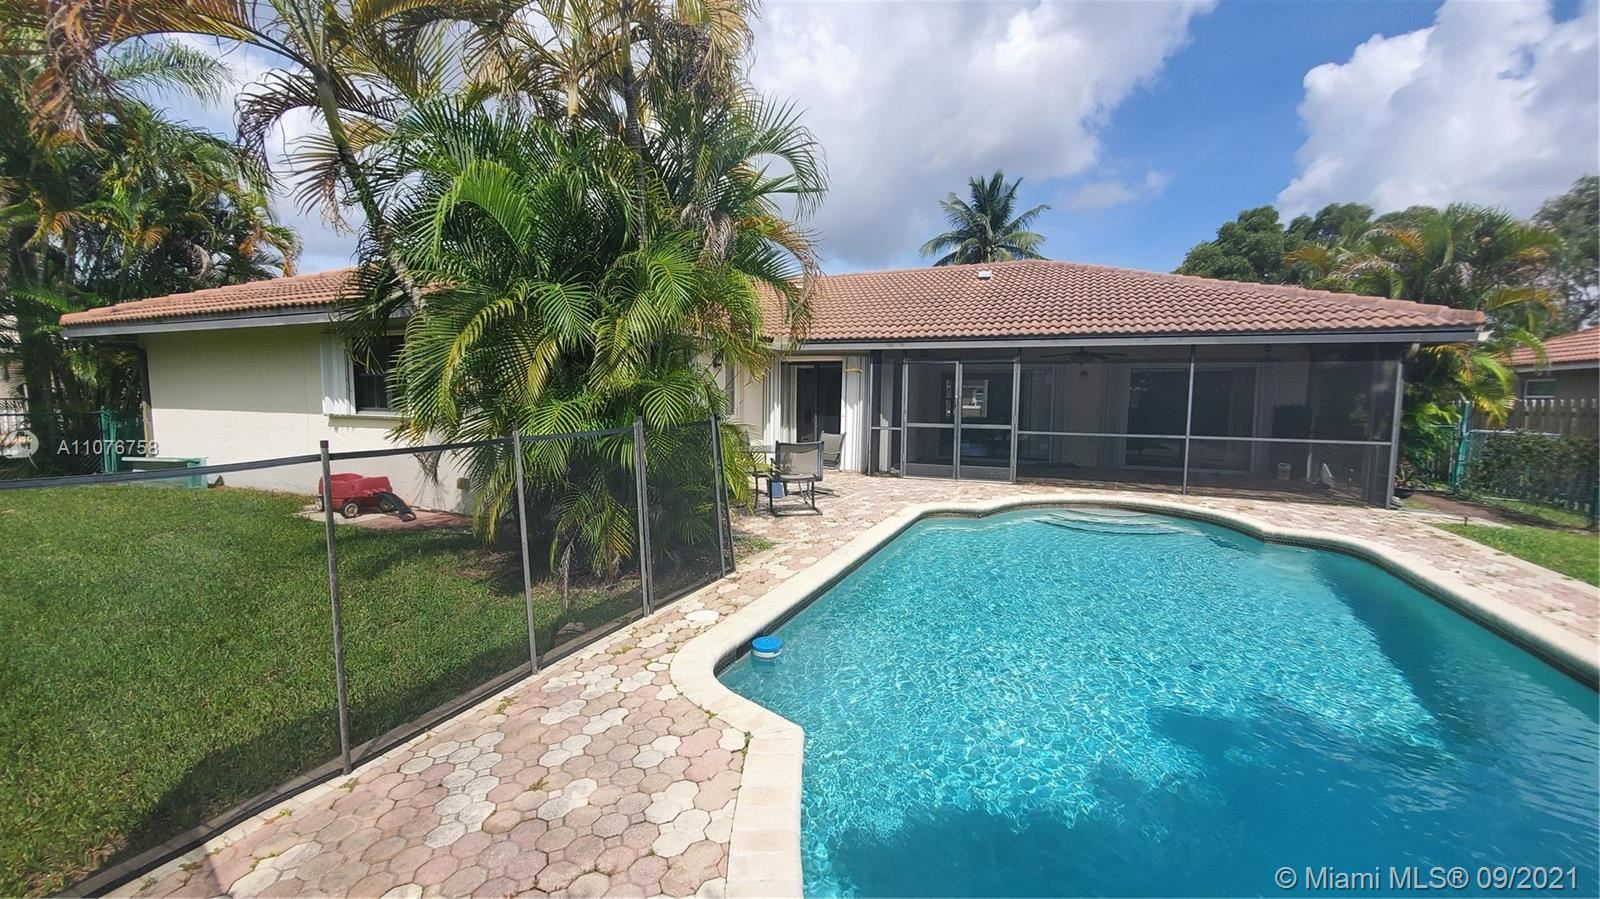 1744 NW 111th Way, Coral Springs, FL 33071 - #: A11076758